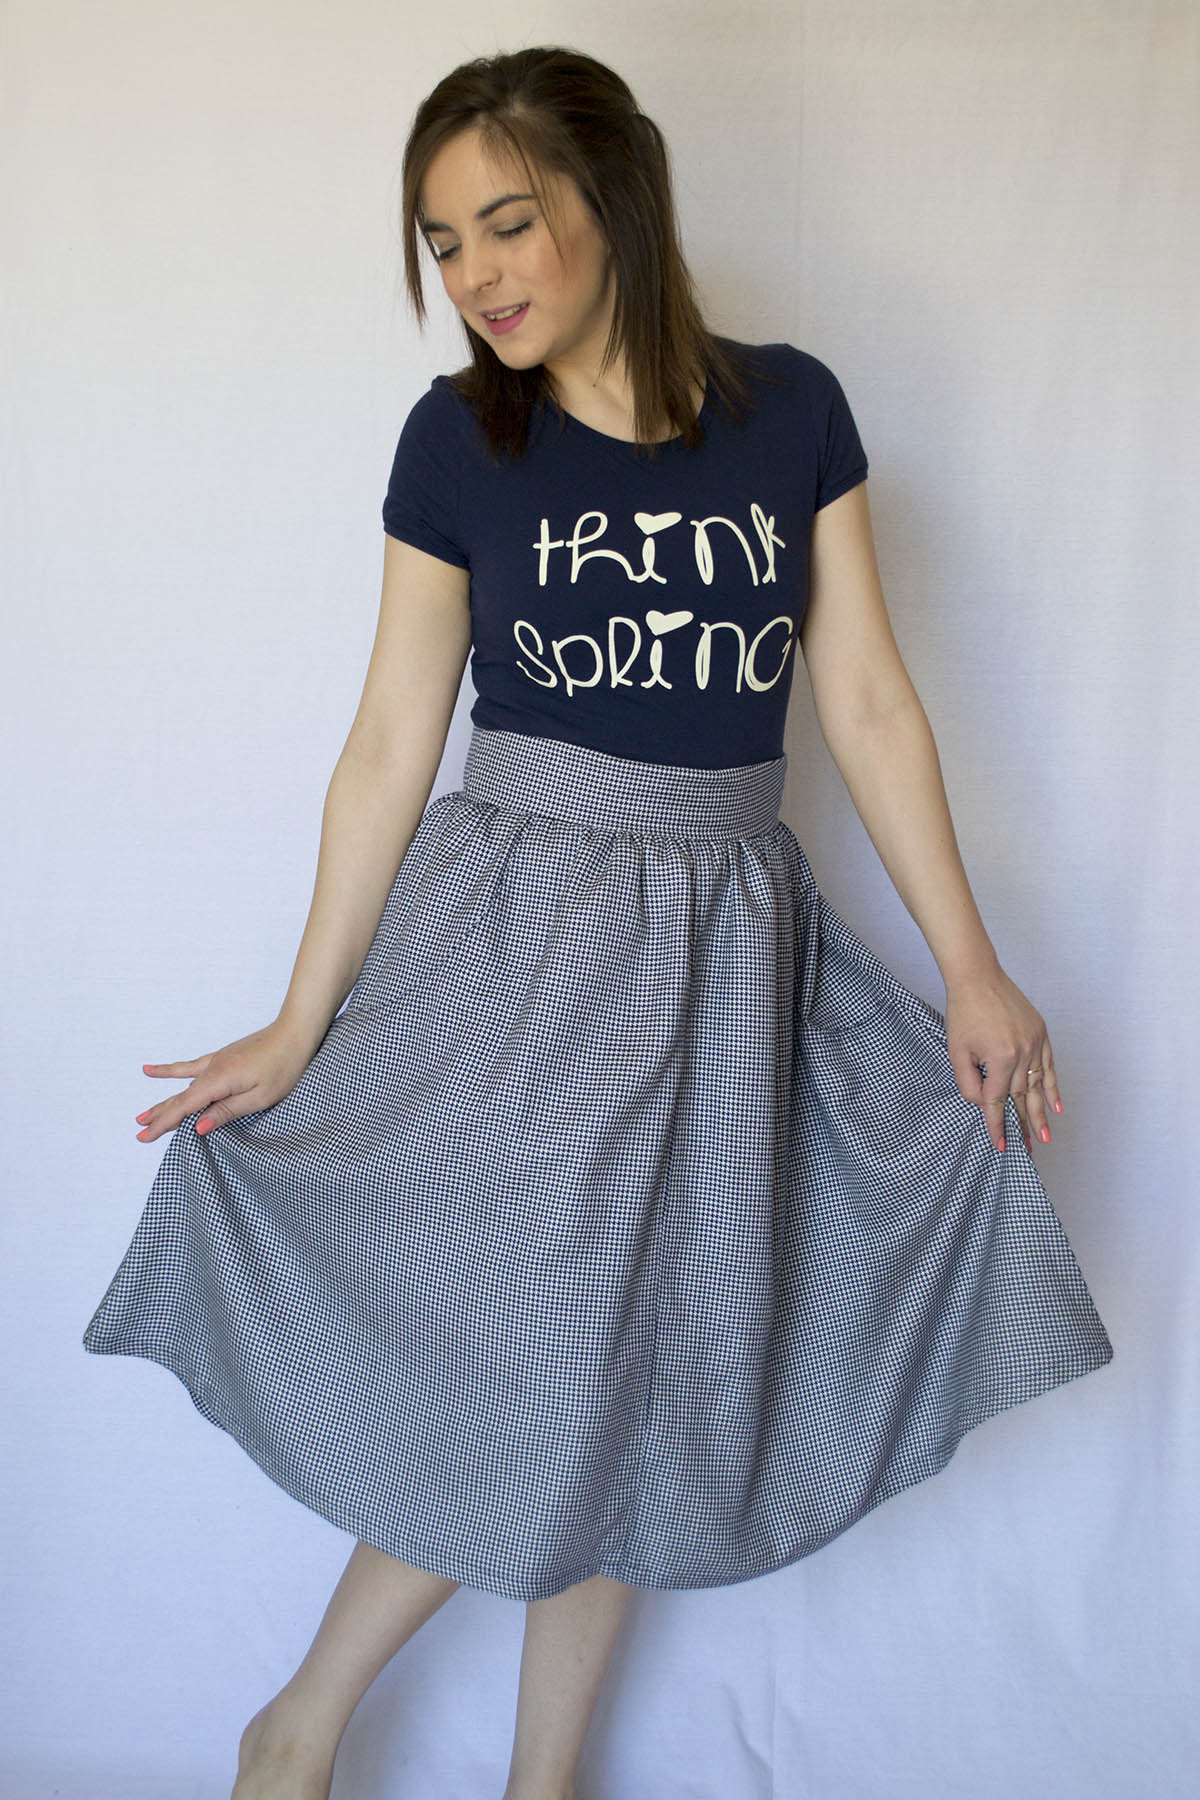 My Brumby Skirt by Megan Nielsen